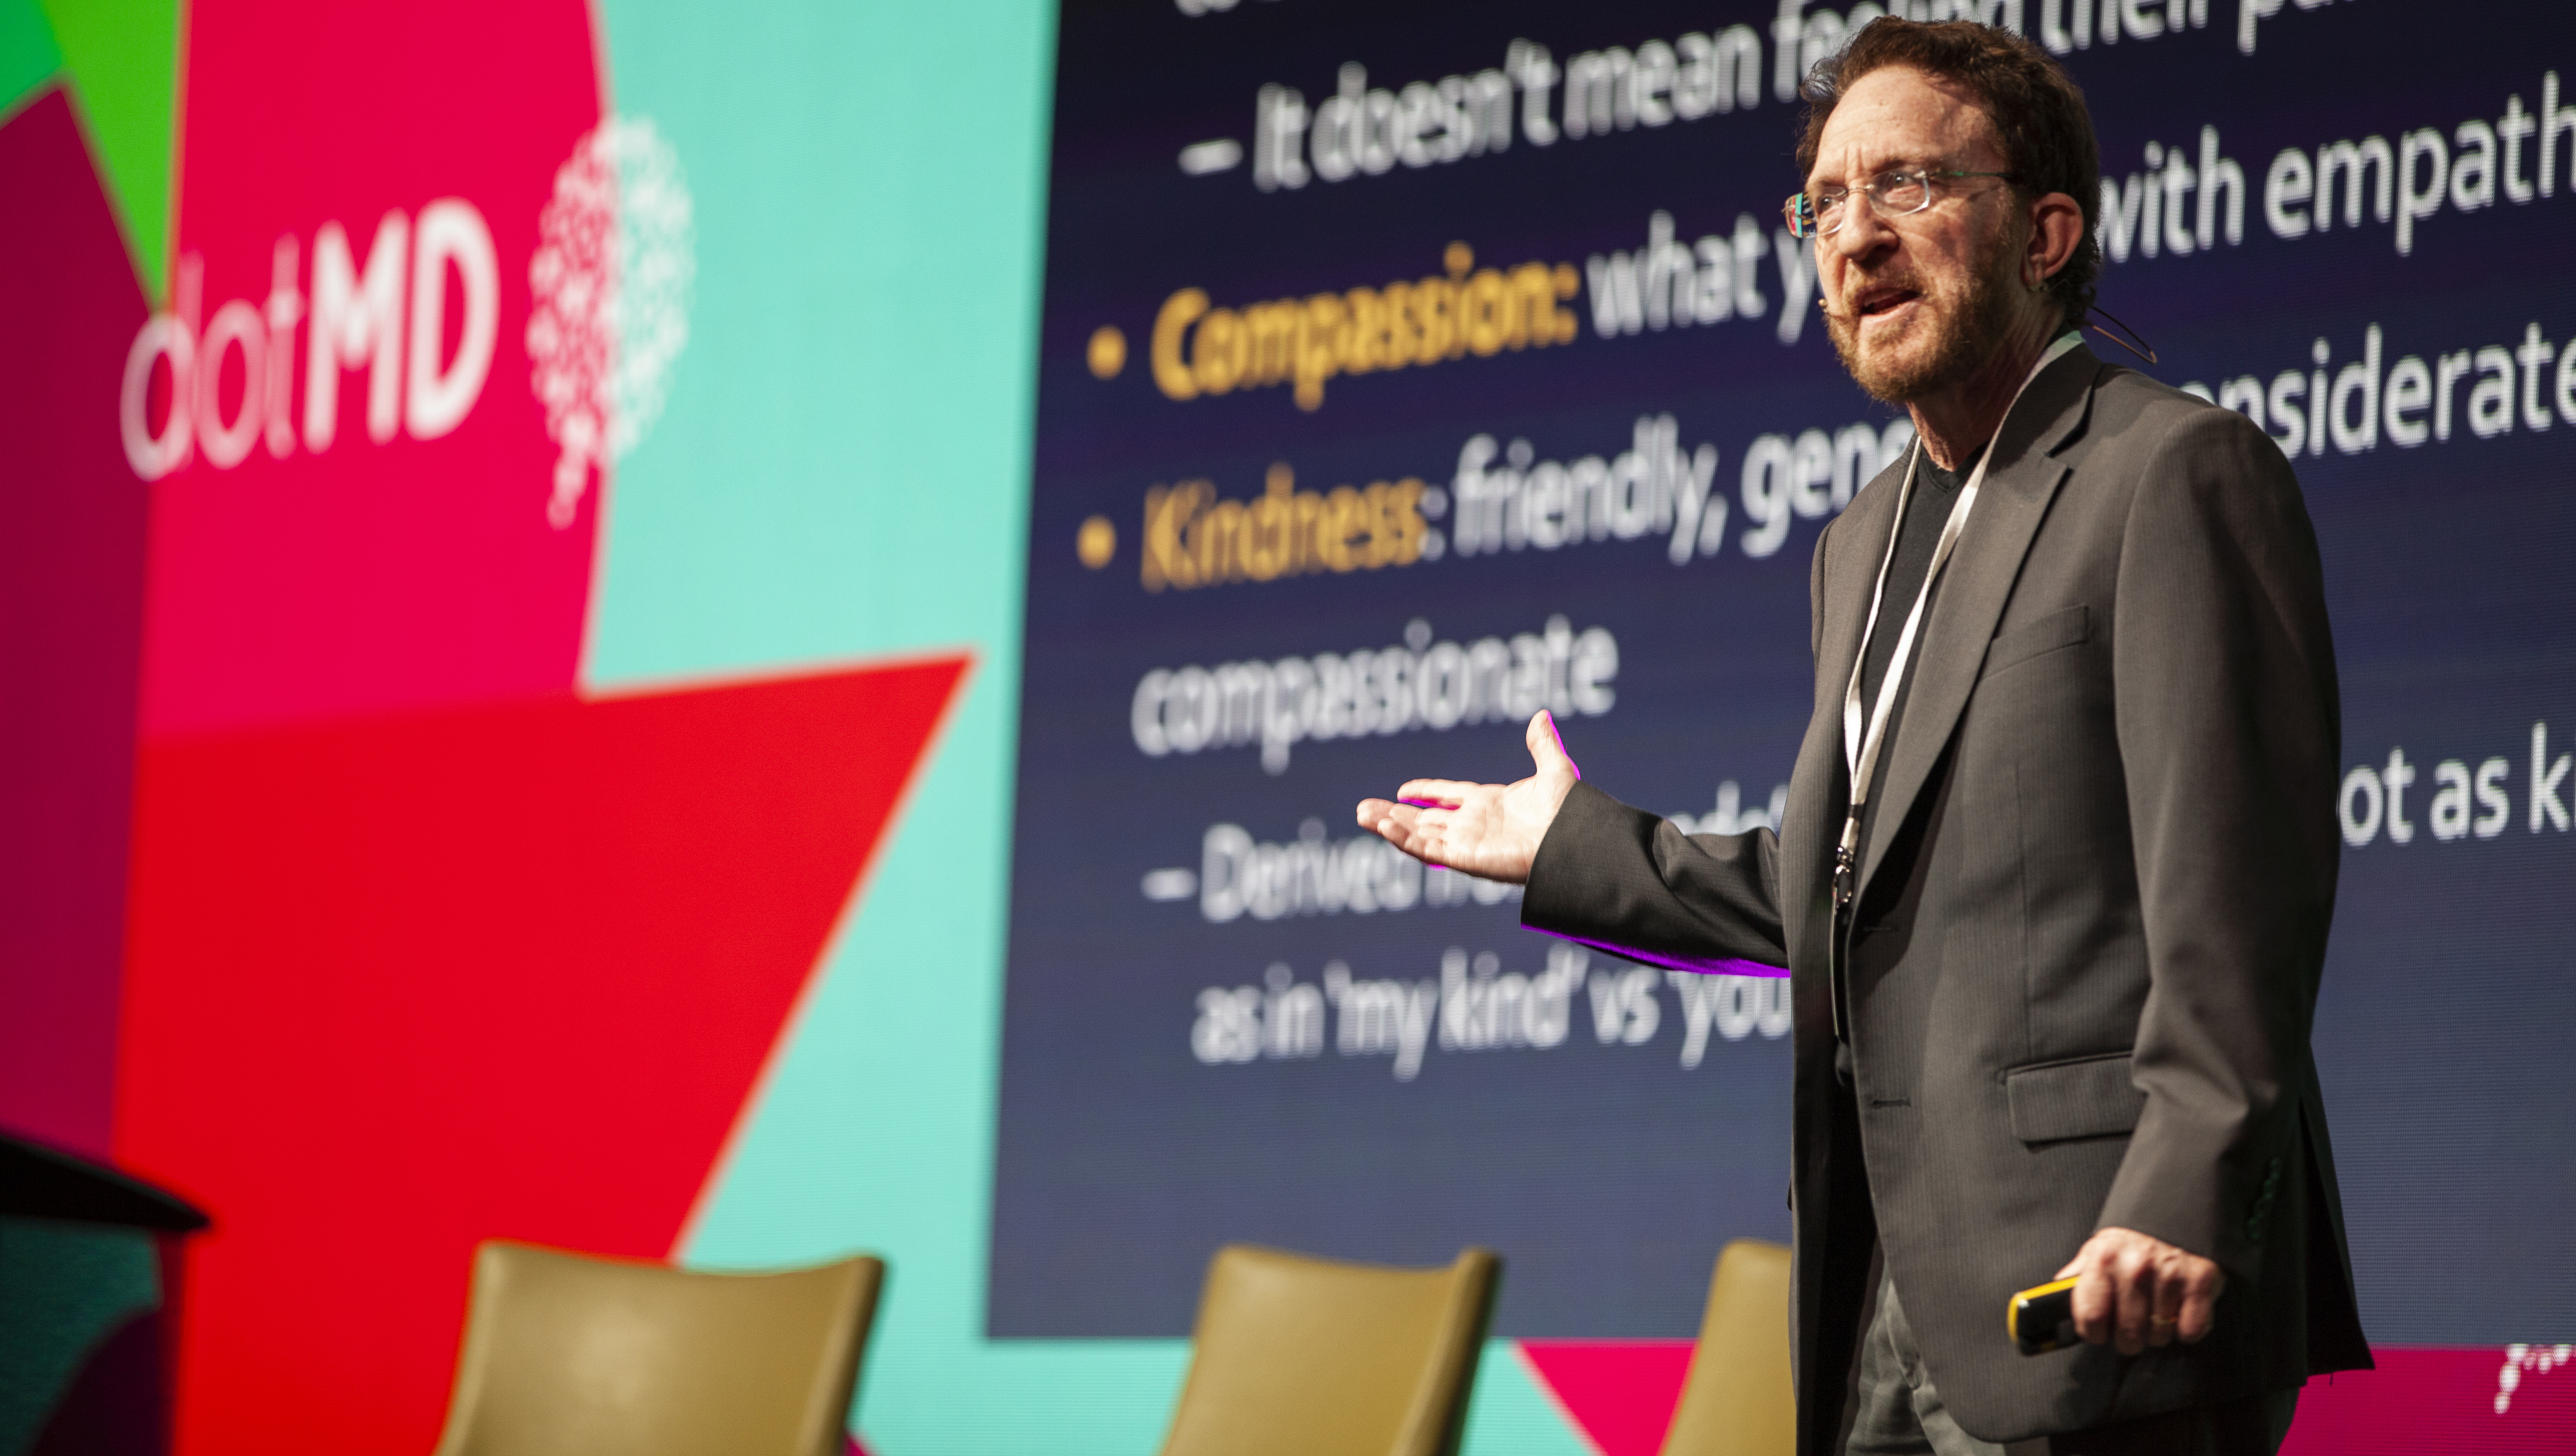 Brian Goldman - Kindness in Medicine - DotMD2019 at the Bailey Allen Hall NUIG 13/09/19